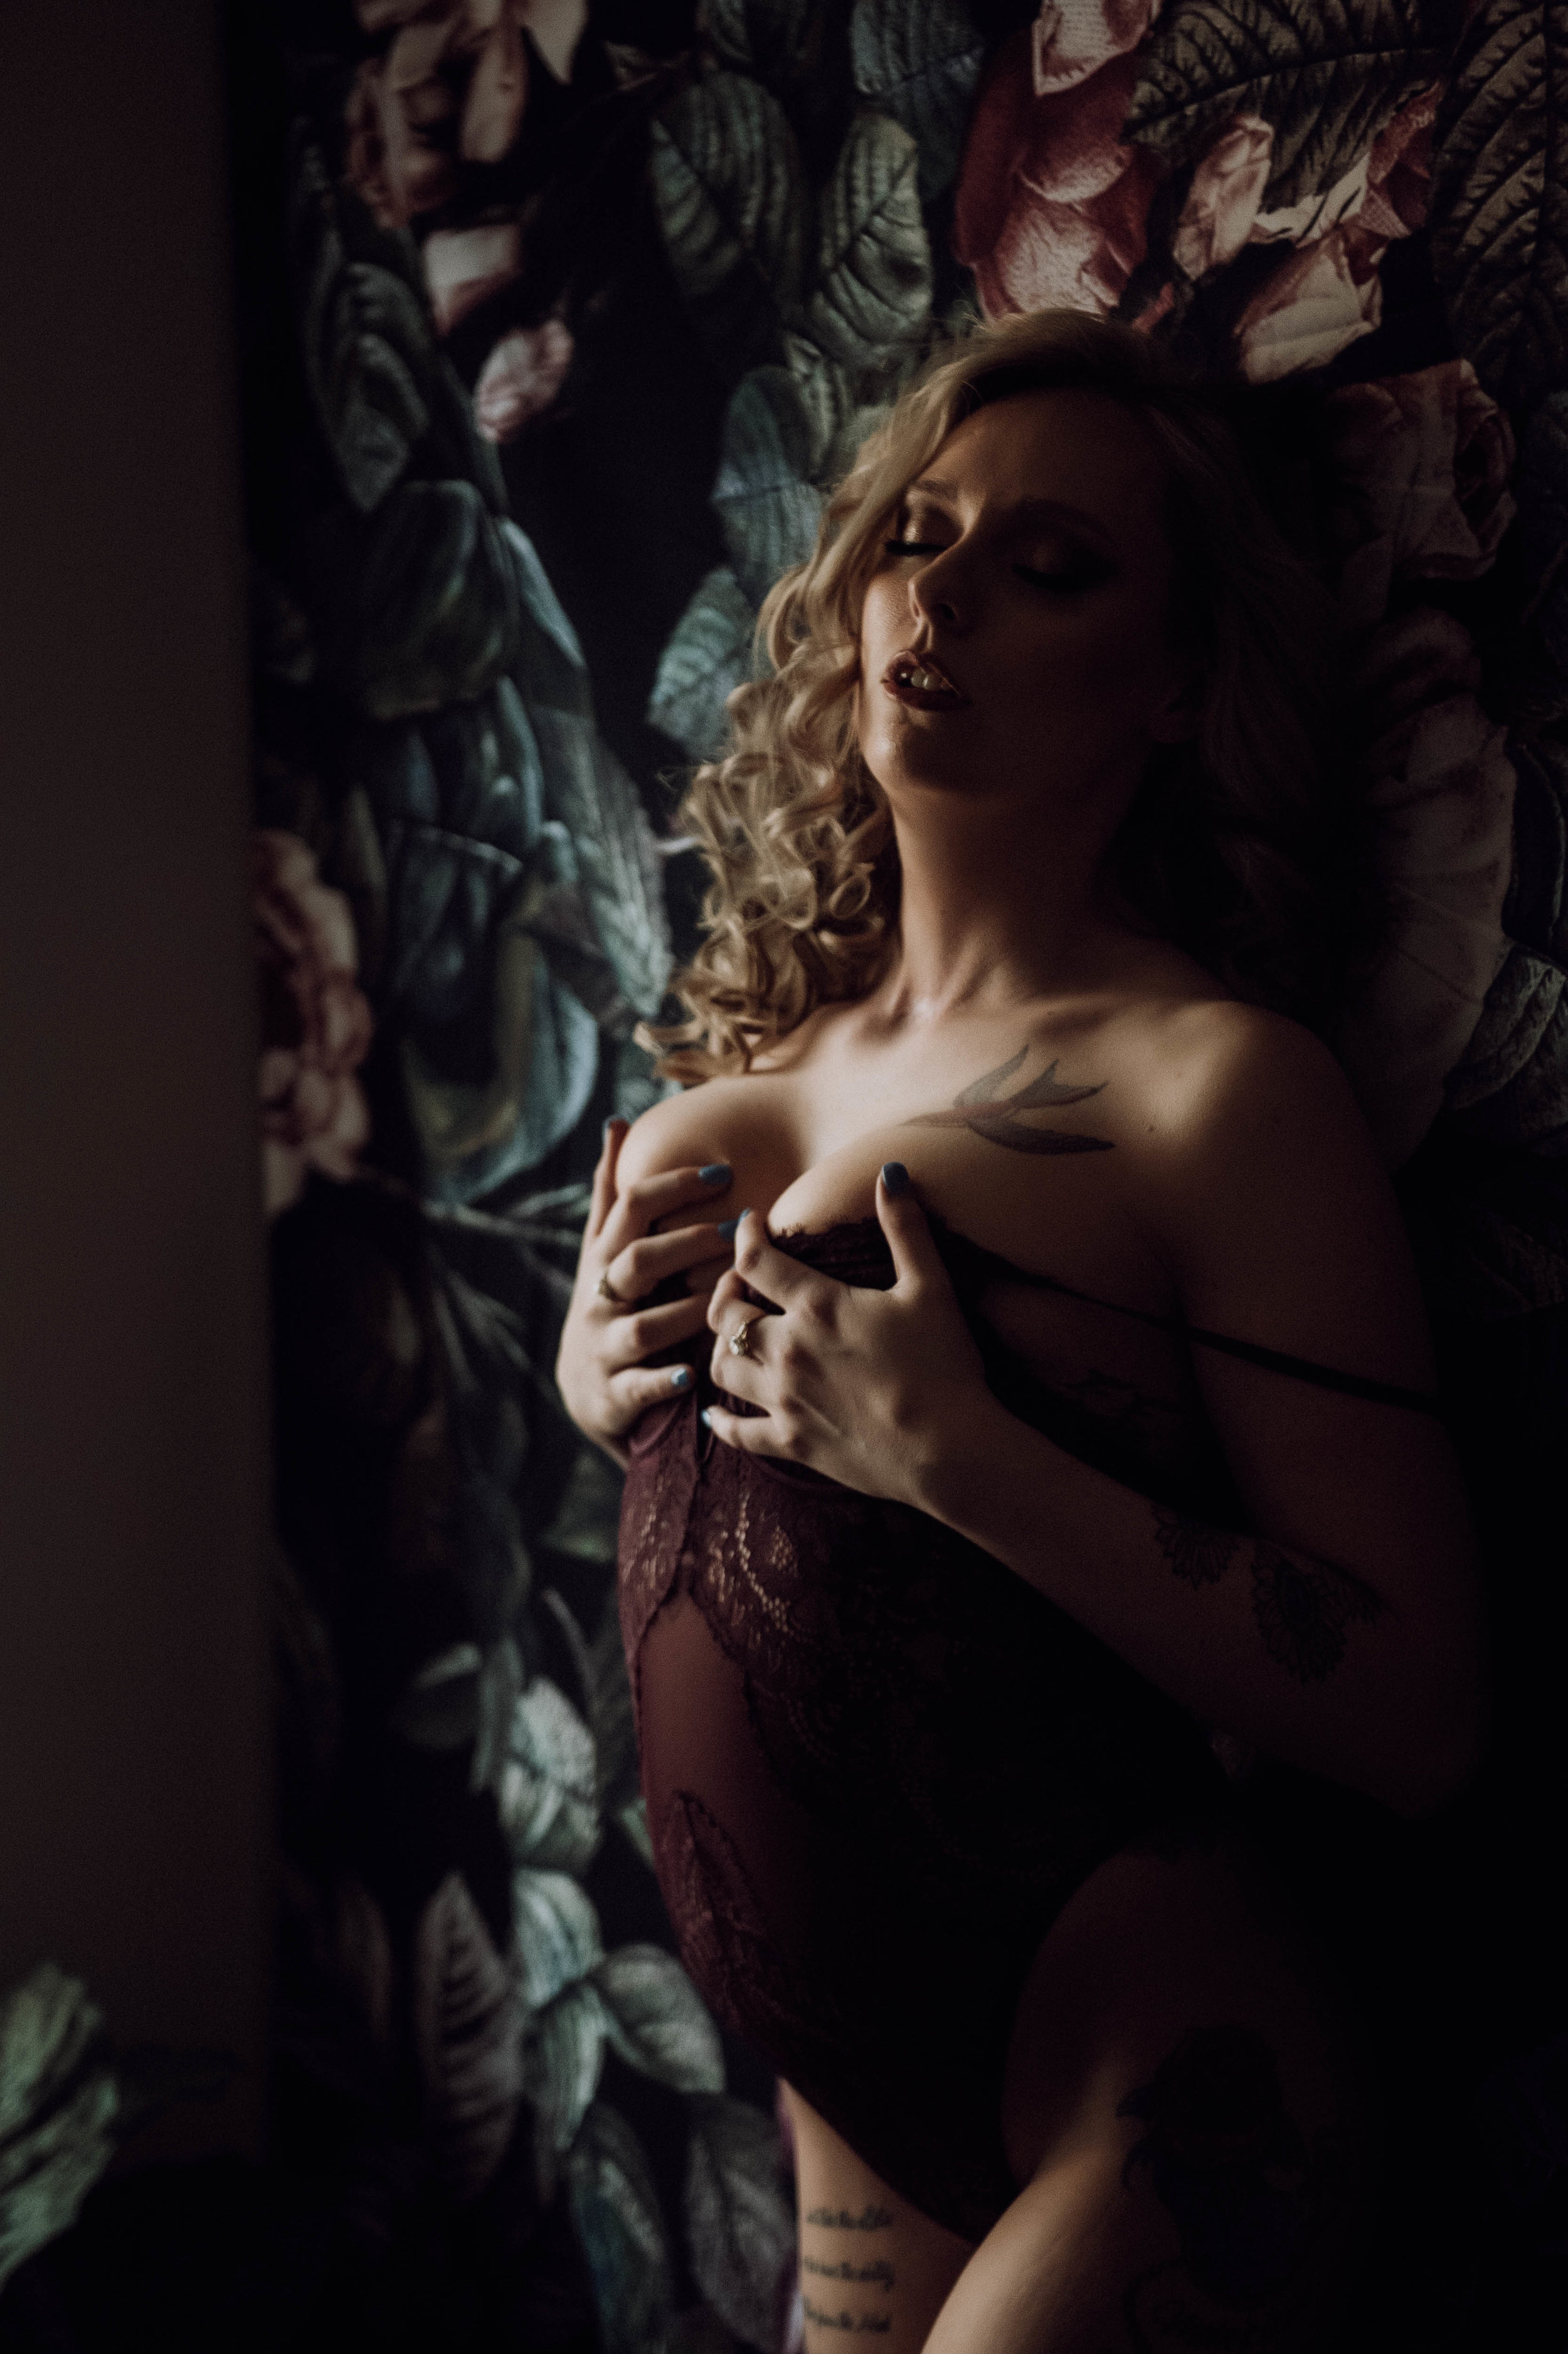 Curly hair blonde woman in purple lace bodysuit flowers on wall boudoir photography new york city studio